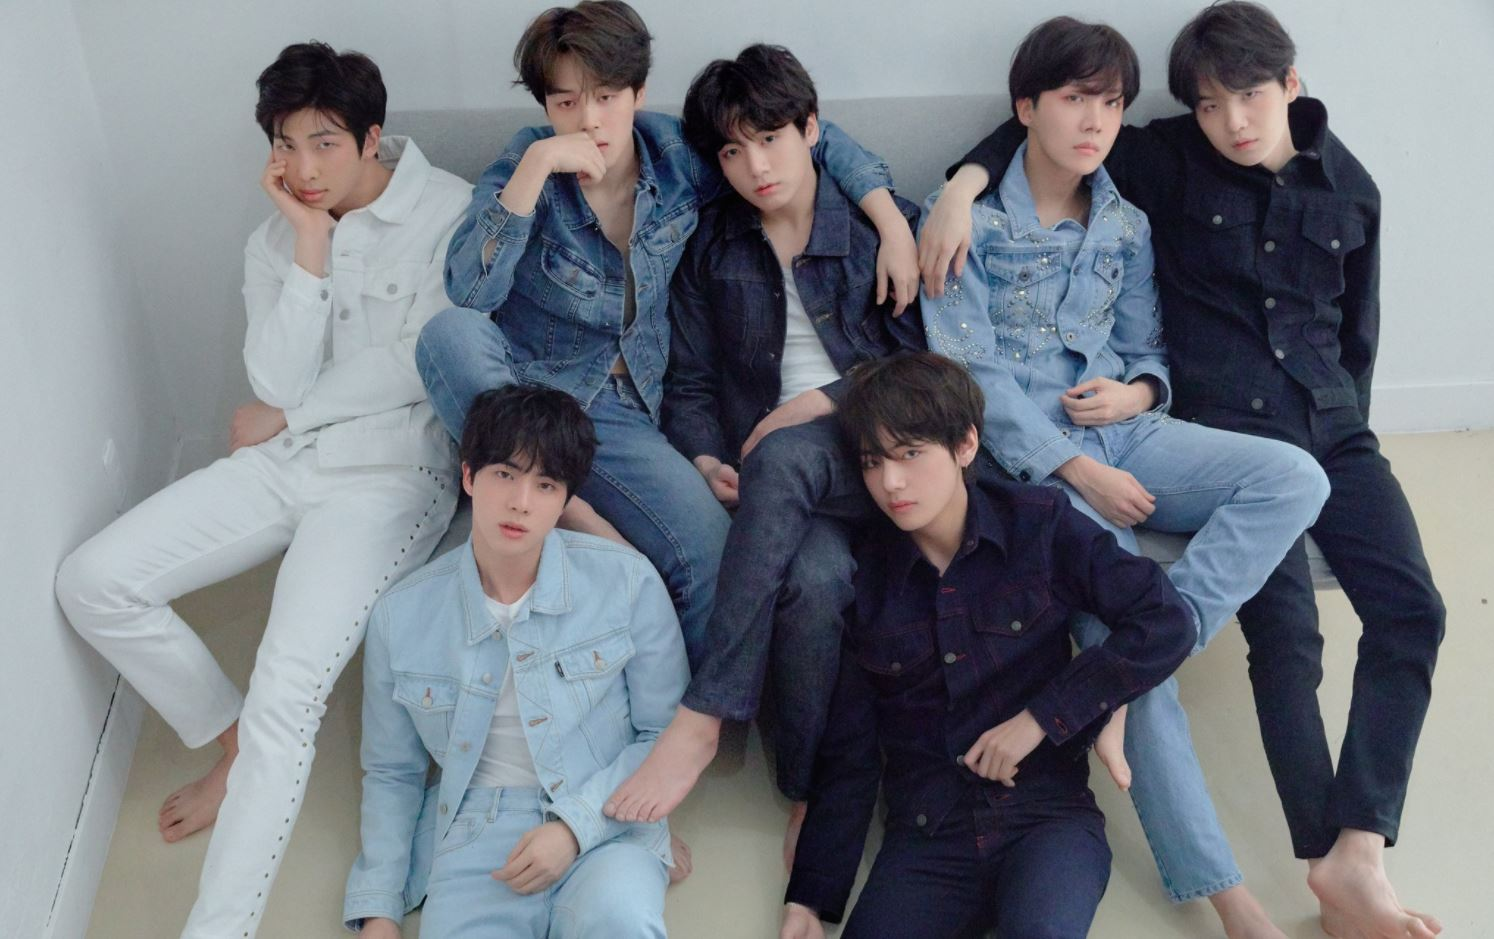 bts love yourself tear photoshoot wallpaper